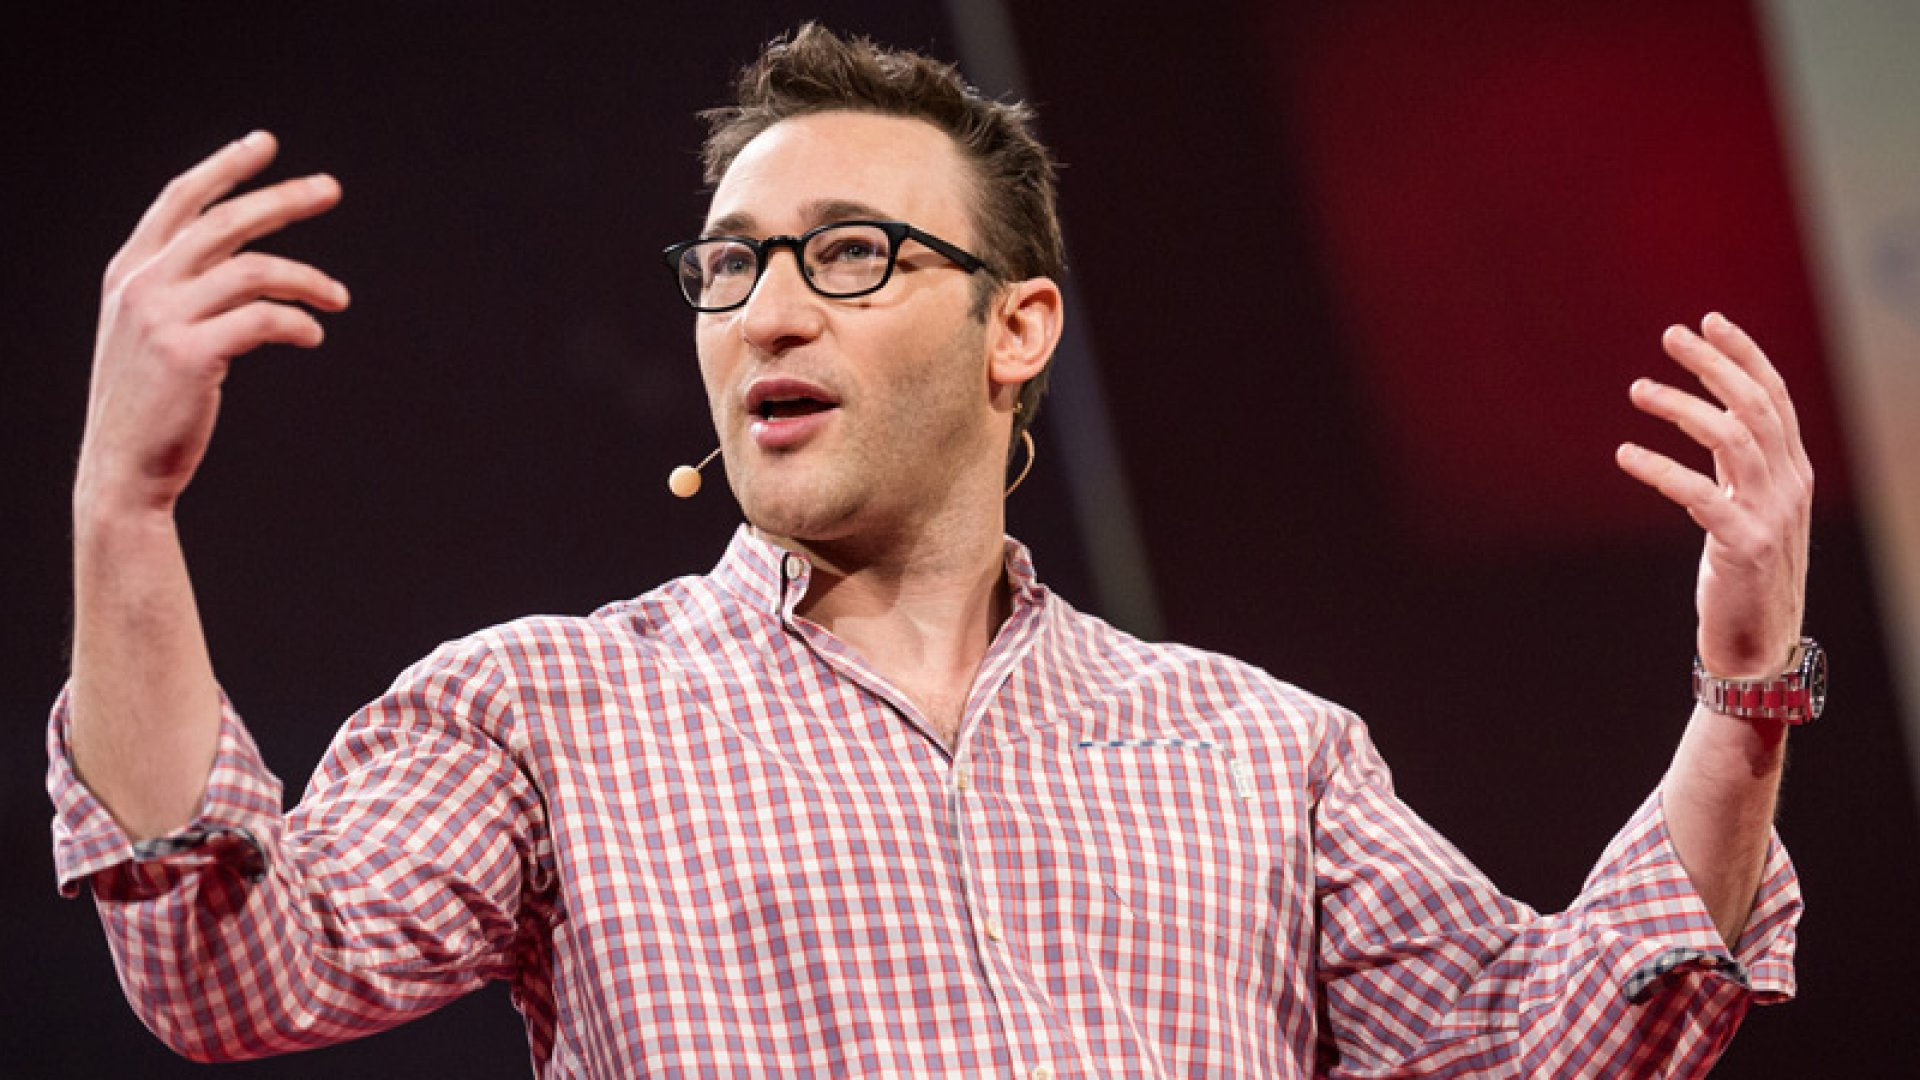 Inspiration, Leadership, and Change: A Q&A With Simon Sinek